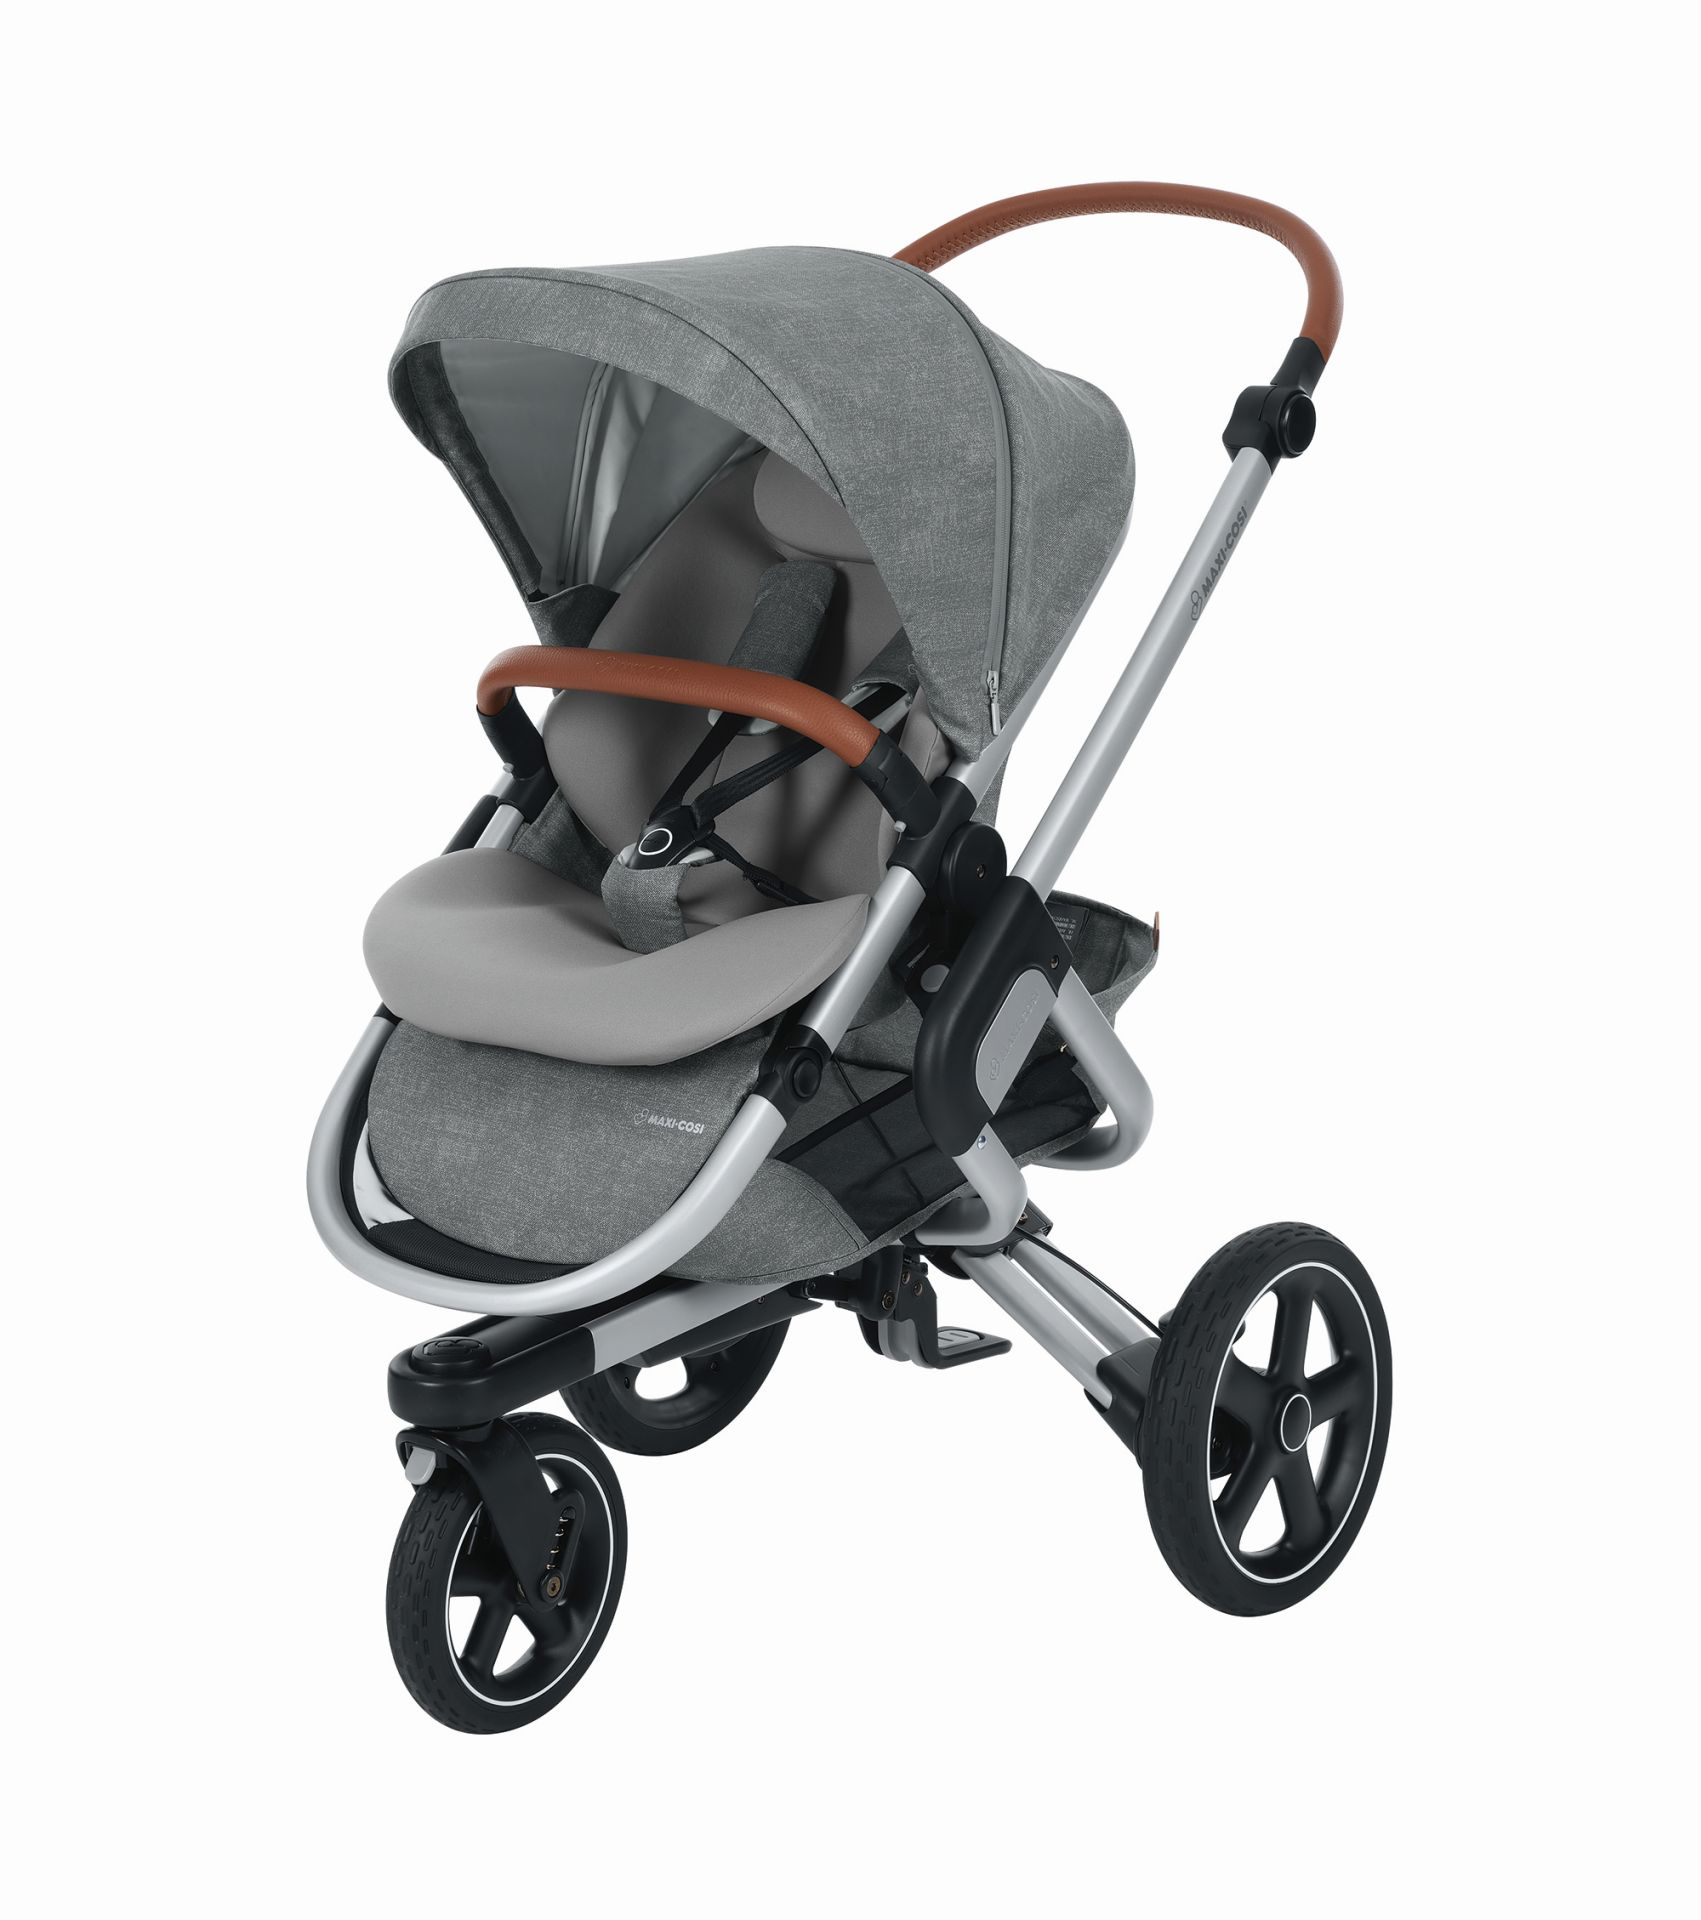 maxi cosi 3 wheels stroller nova 2018 nomad grey buy at. Black Bedroom Furniture Sets. Home Design Ideas